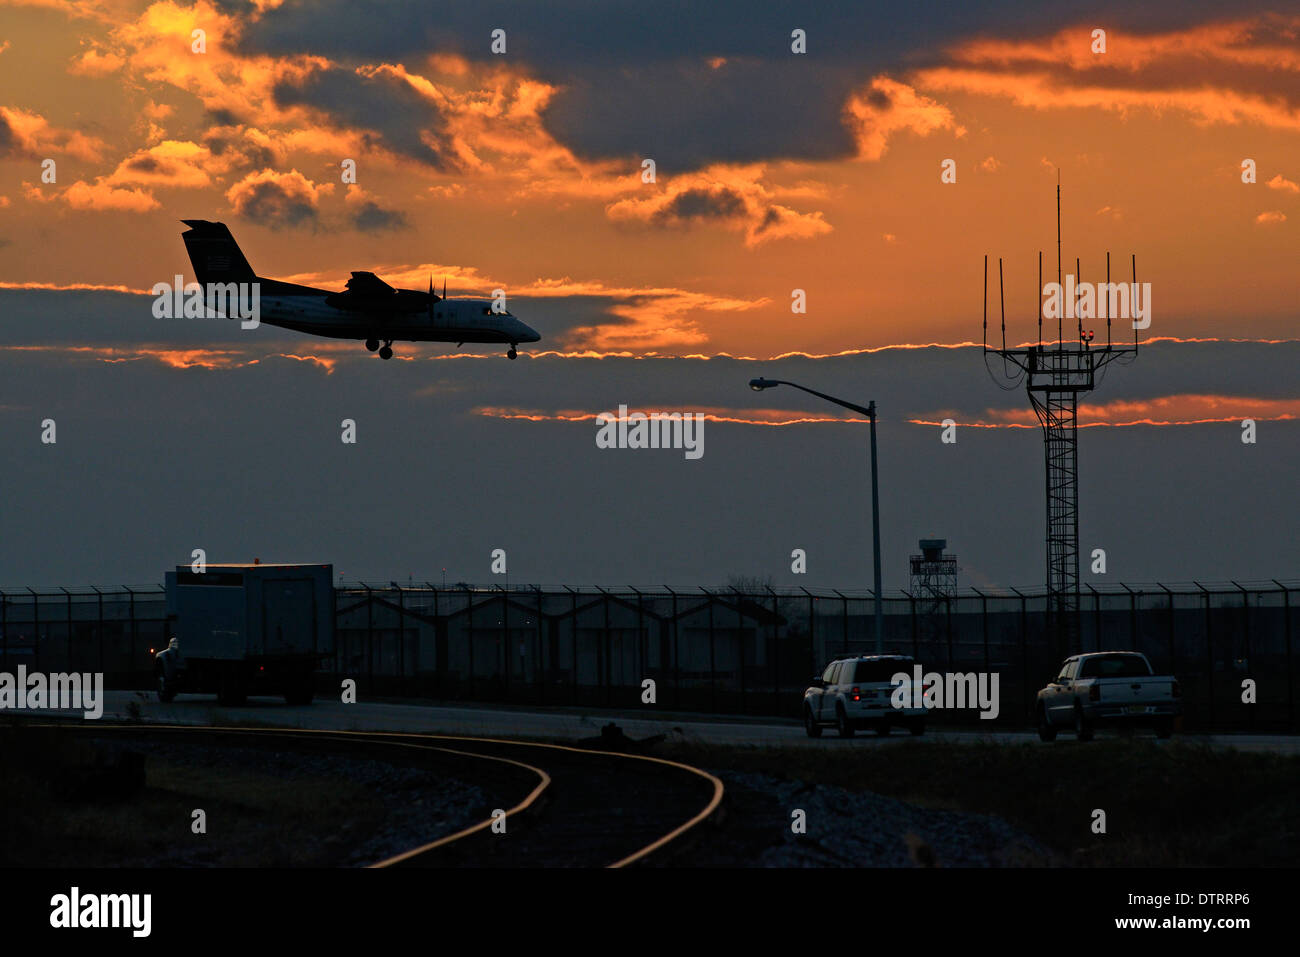 Flugreisen Sie in Philadelphia International Airport in Philadelphia, Pennsylvania. Stockbild